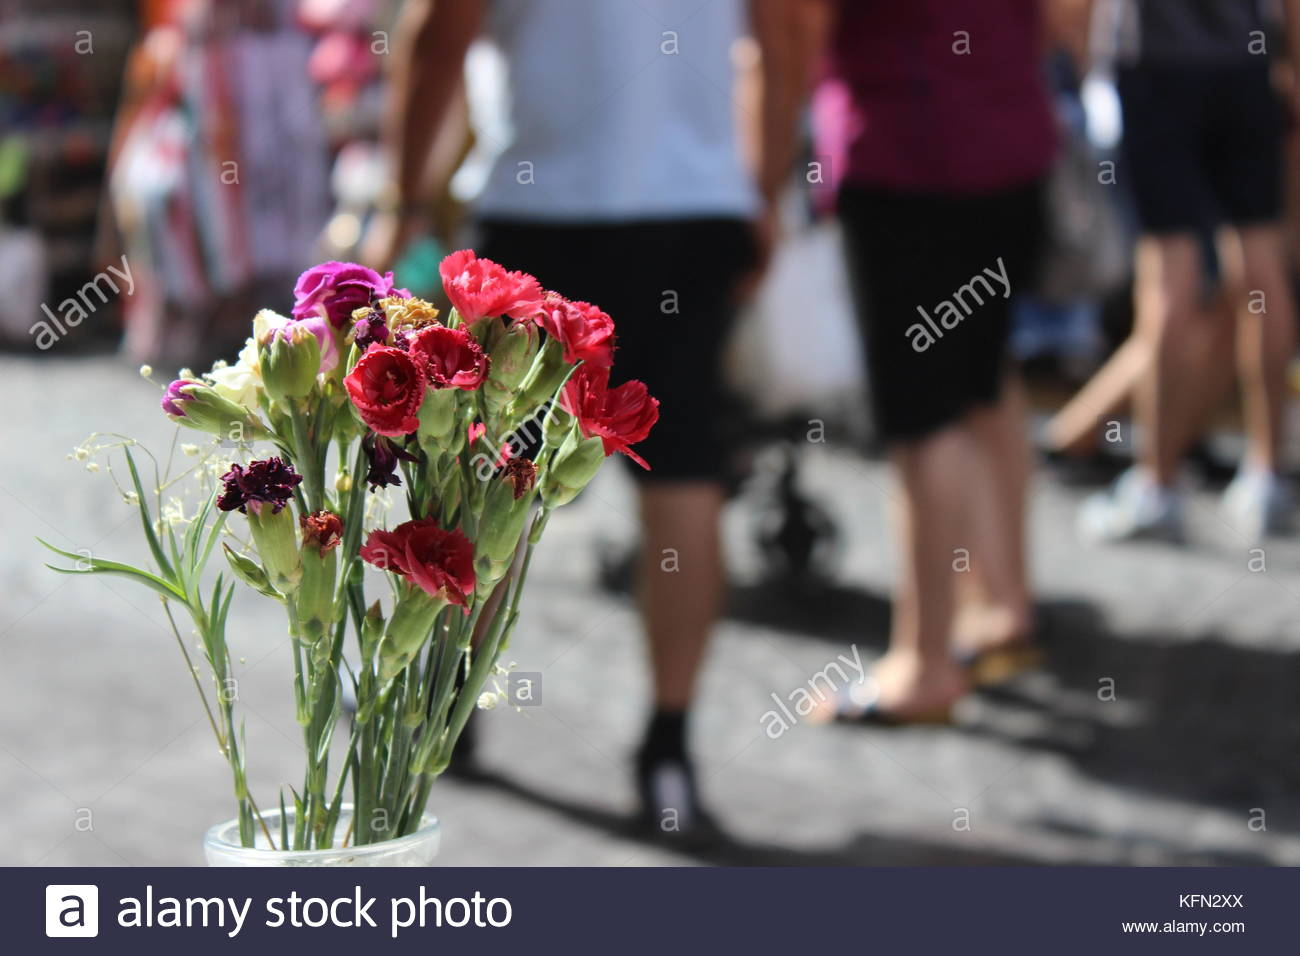 Depth of field multi colored flowers in busy street of people - Stock Image